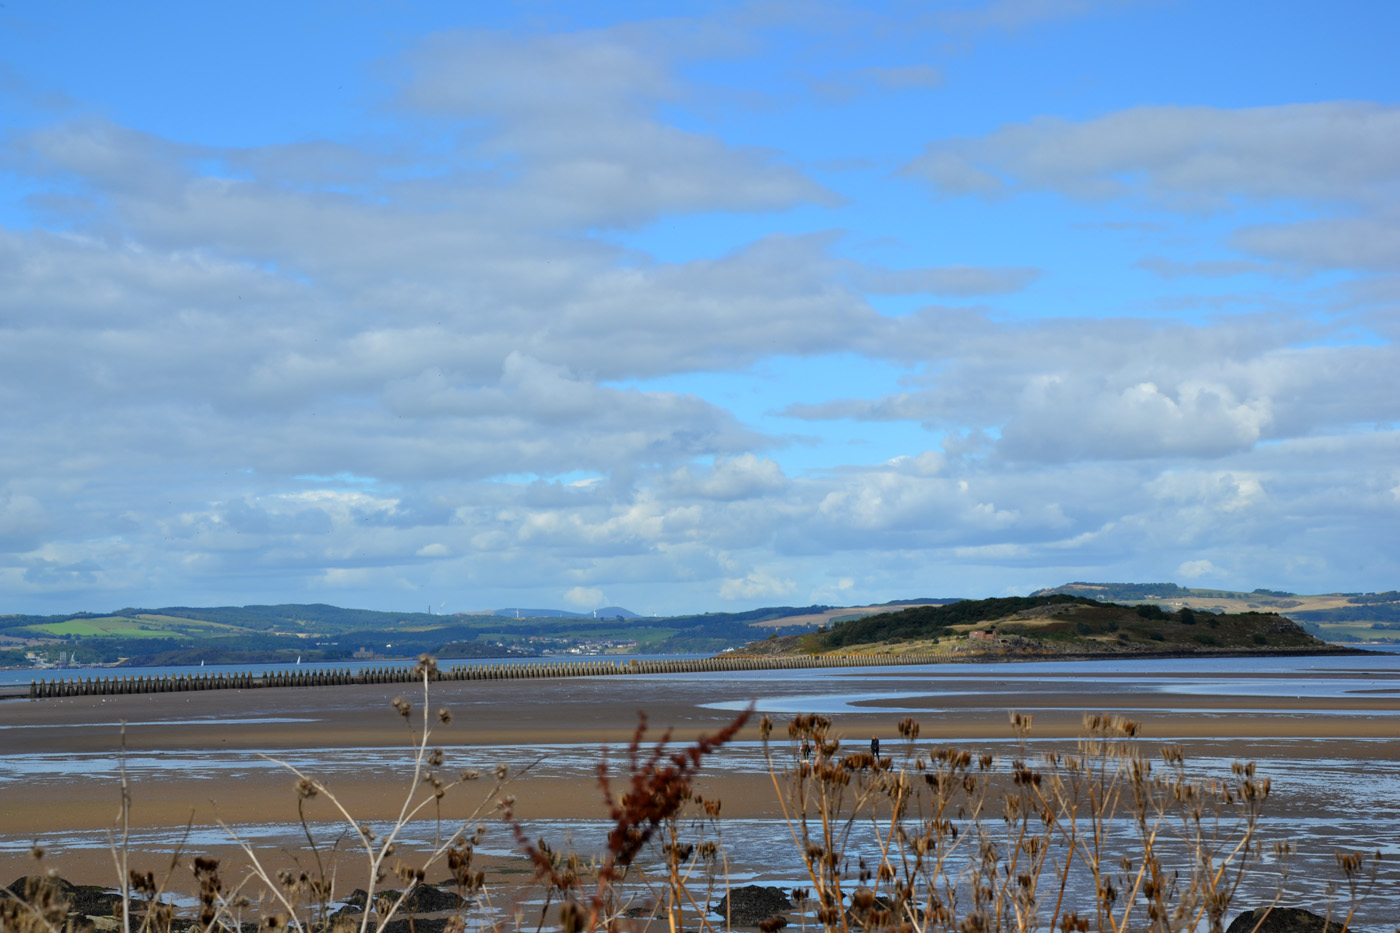 Cramond (Scotland) by XOANYU